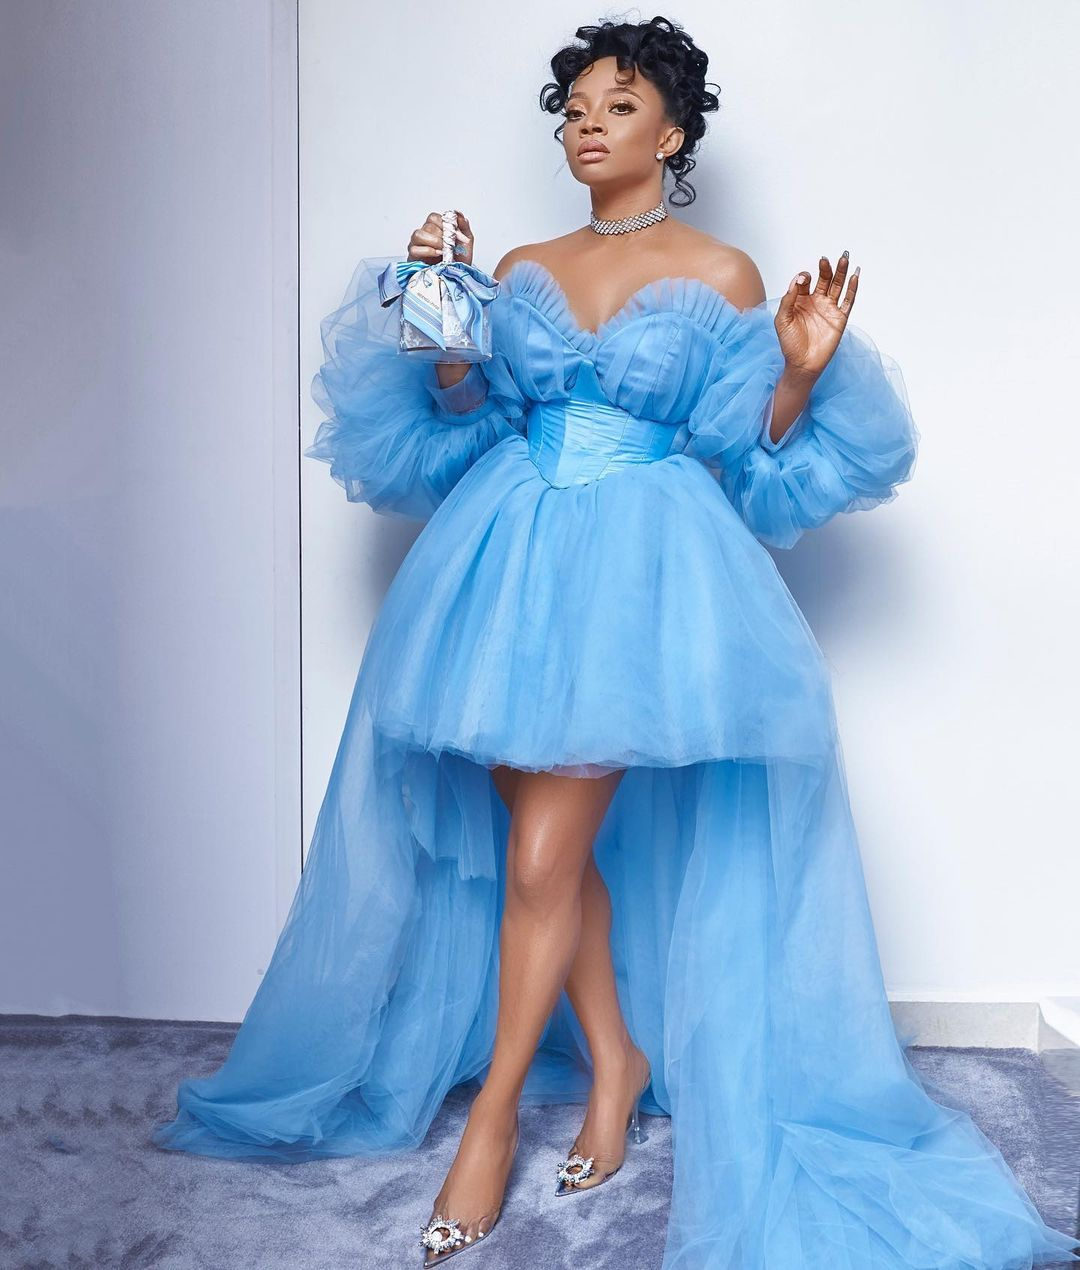 Tubo fairy tail princess custom made baby blue tulle dress